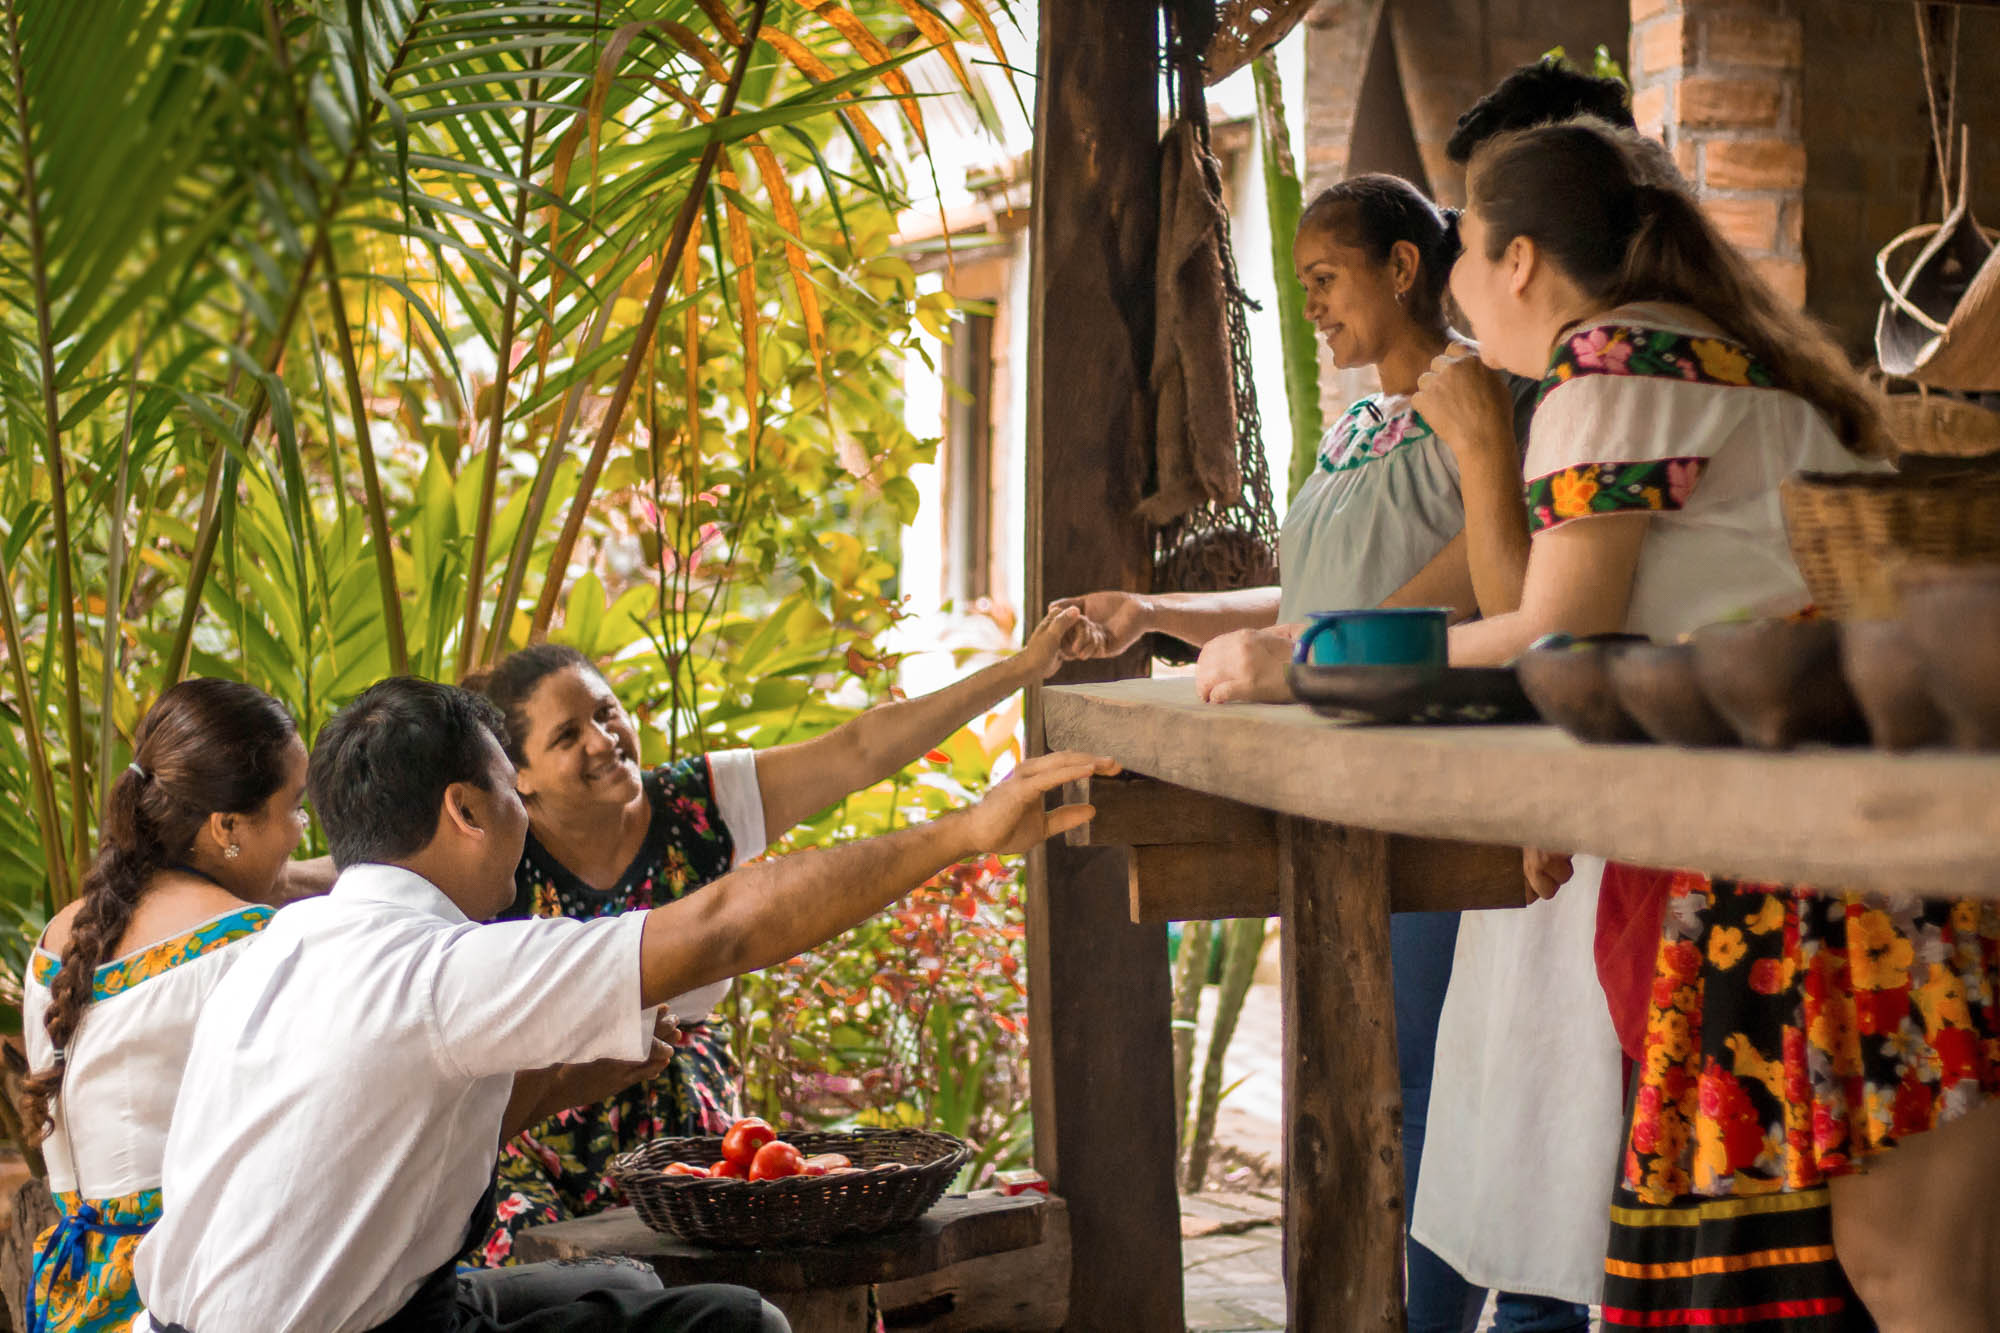 The magical interior dining room at Cocina Chontal in the Mexican jungle is adjacent to a larger open-air dining room where staff mingle with guests.